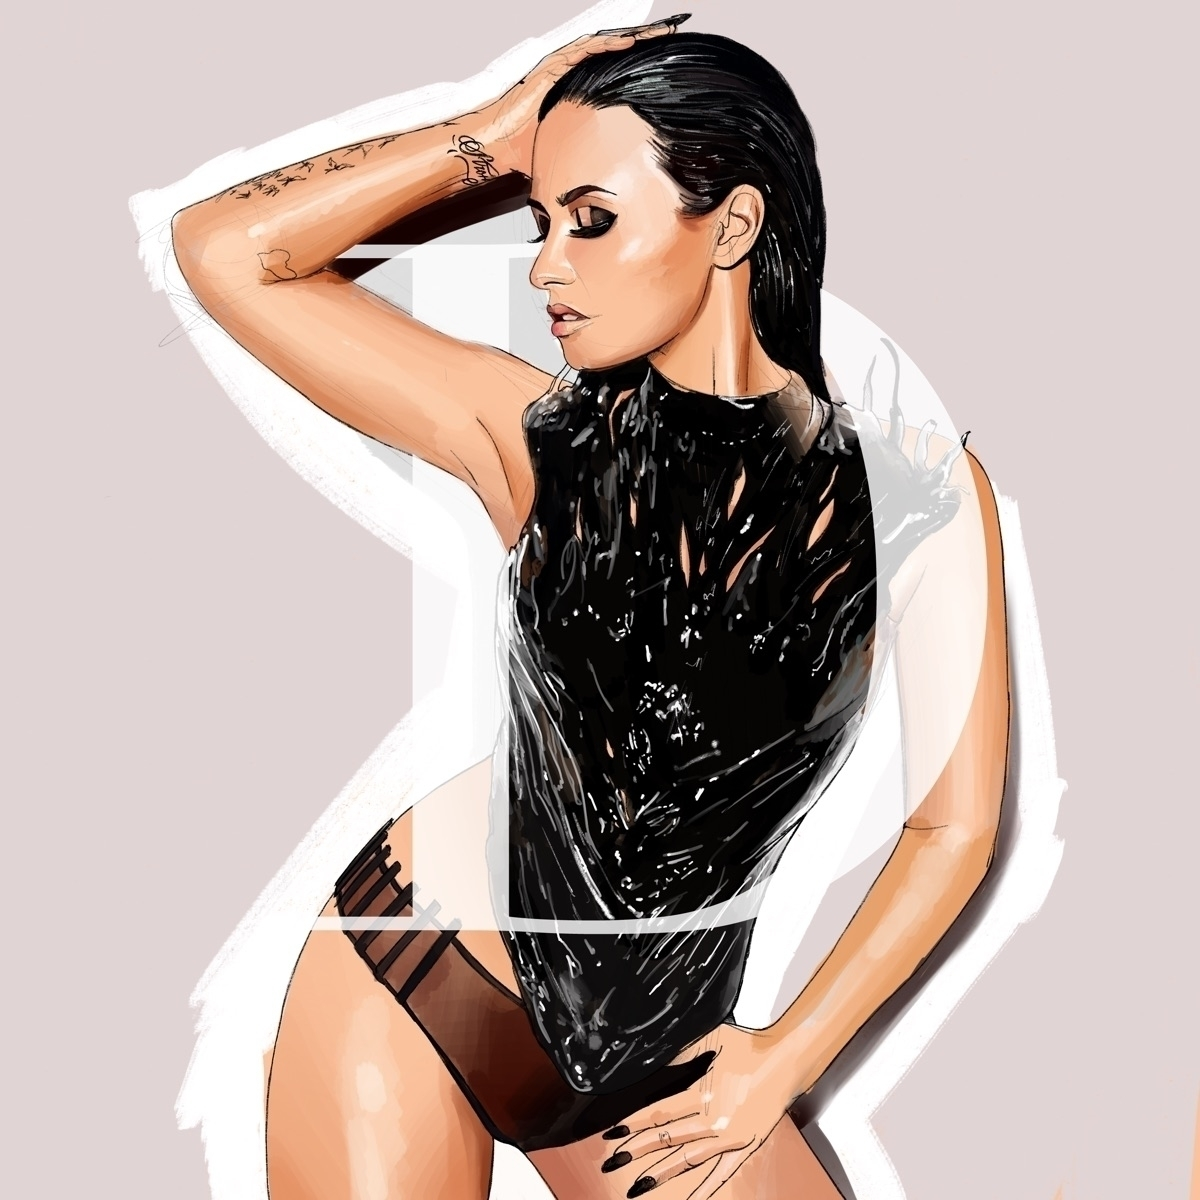 Demi Illustration - demi, demilovato - fmonroyr | ello